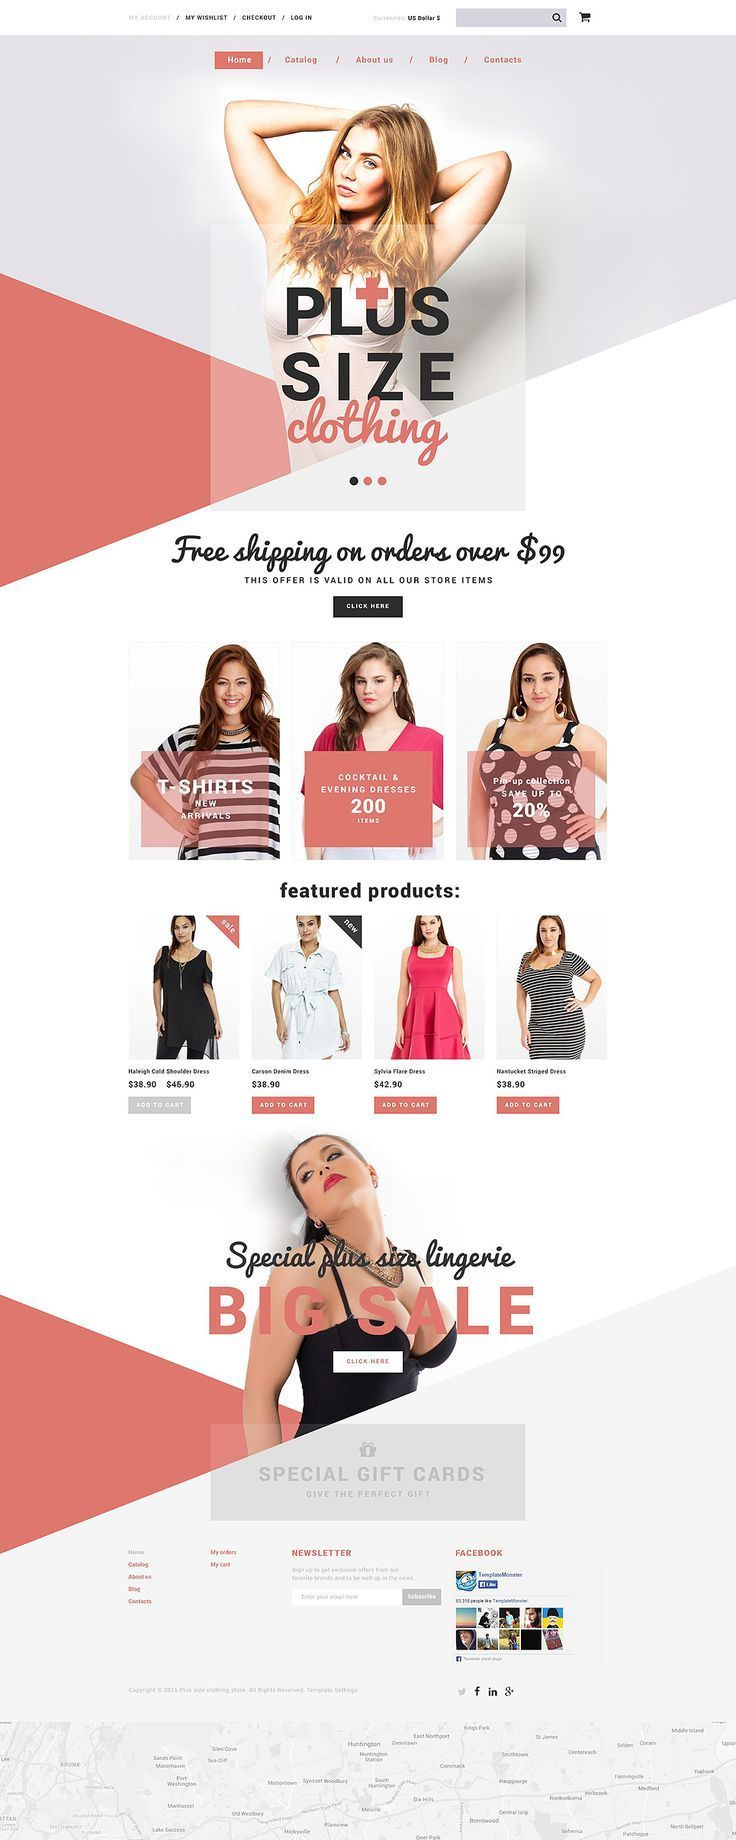 Top 5 Best Practices For Online Shopping Websites Shopify Theme Plus Size Outfits Dropshipping Products